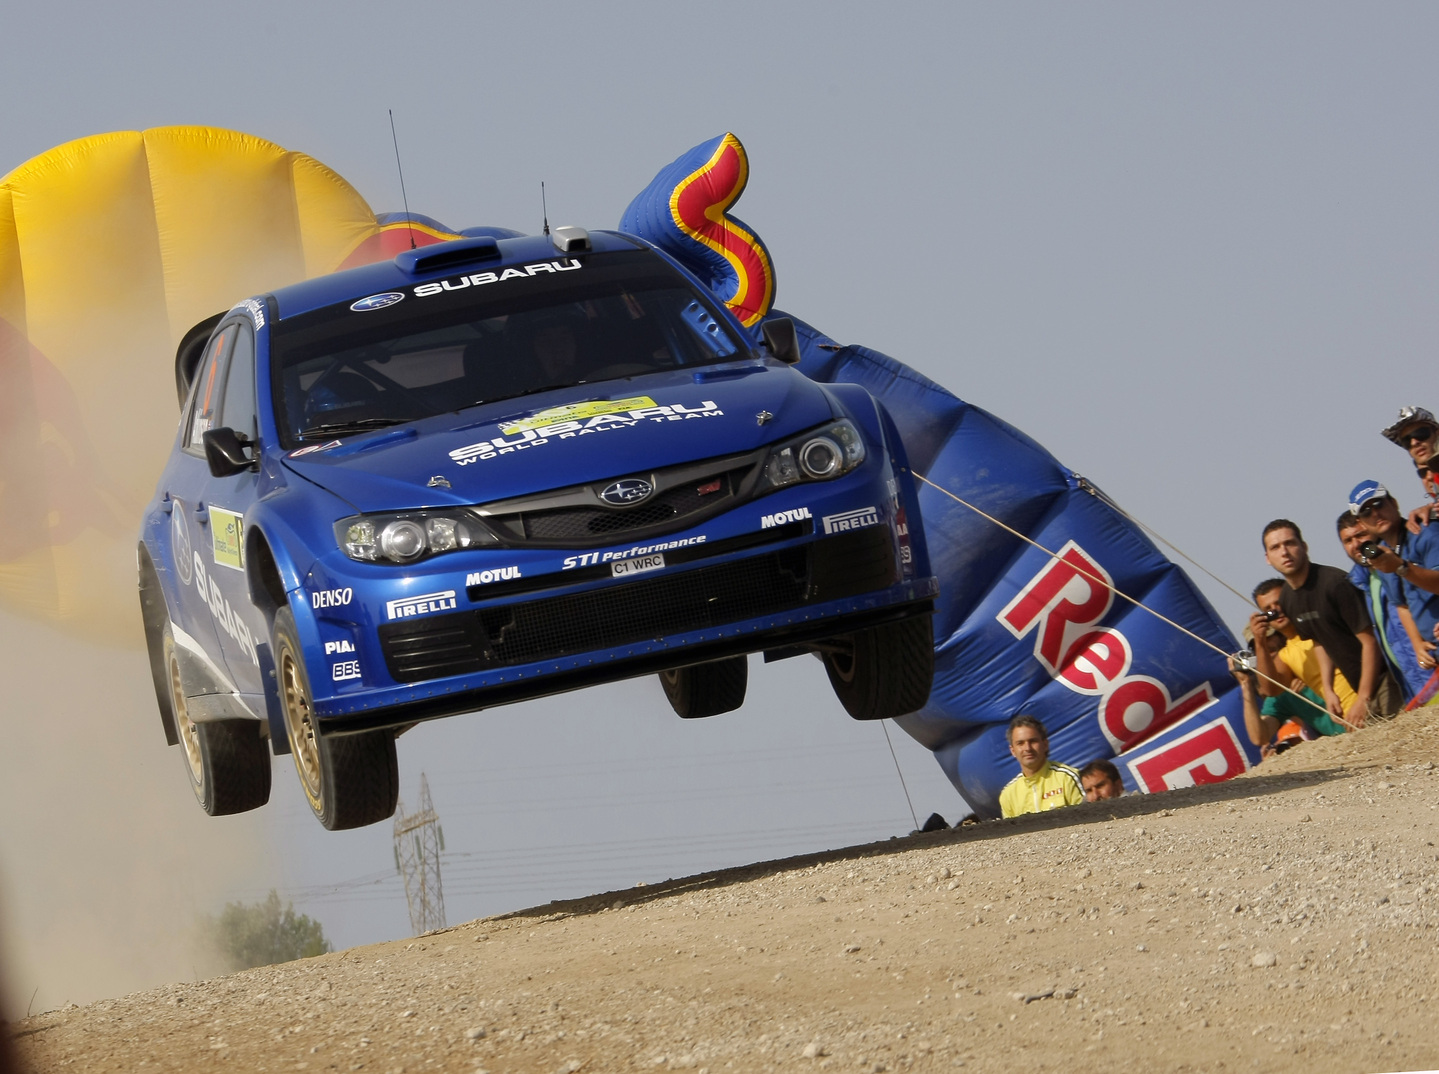 cars jumping rally Subaru HD Wallpaper